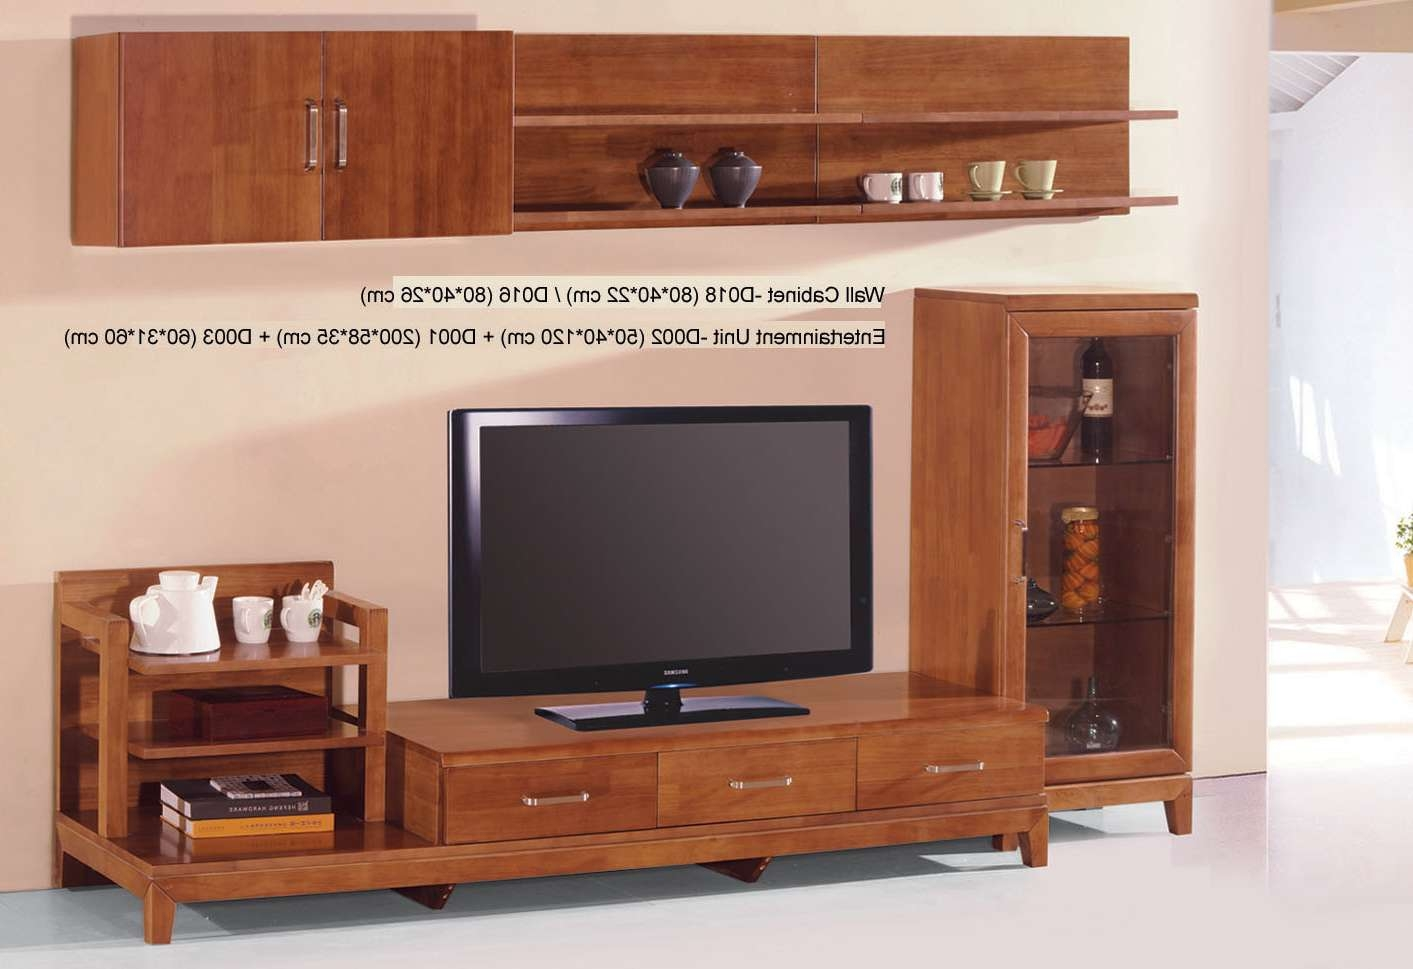 Country Style Tv Stand Unit Idea In Honey Oak Finish With Three Intended For Honey Oak Tv Stands (View 9 of 15)